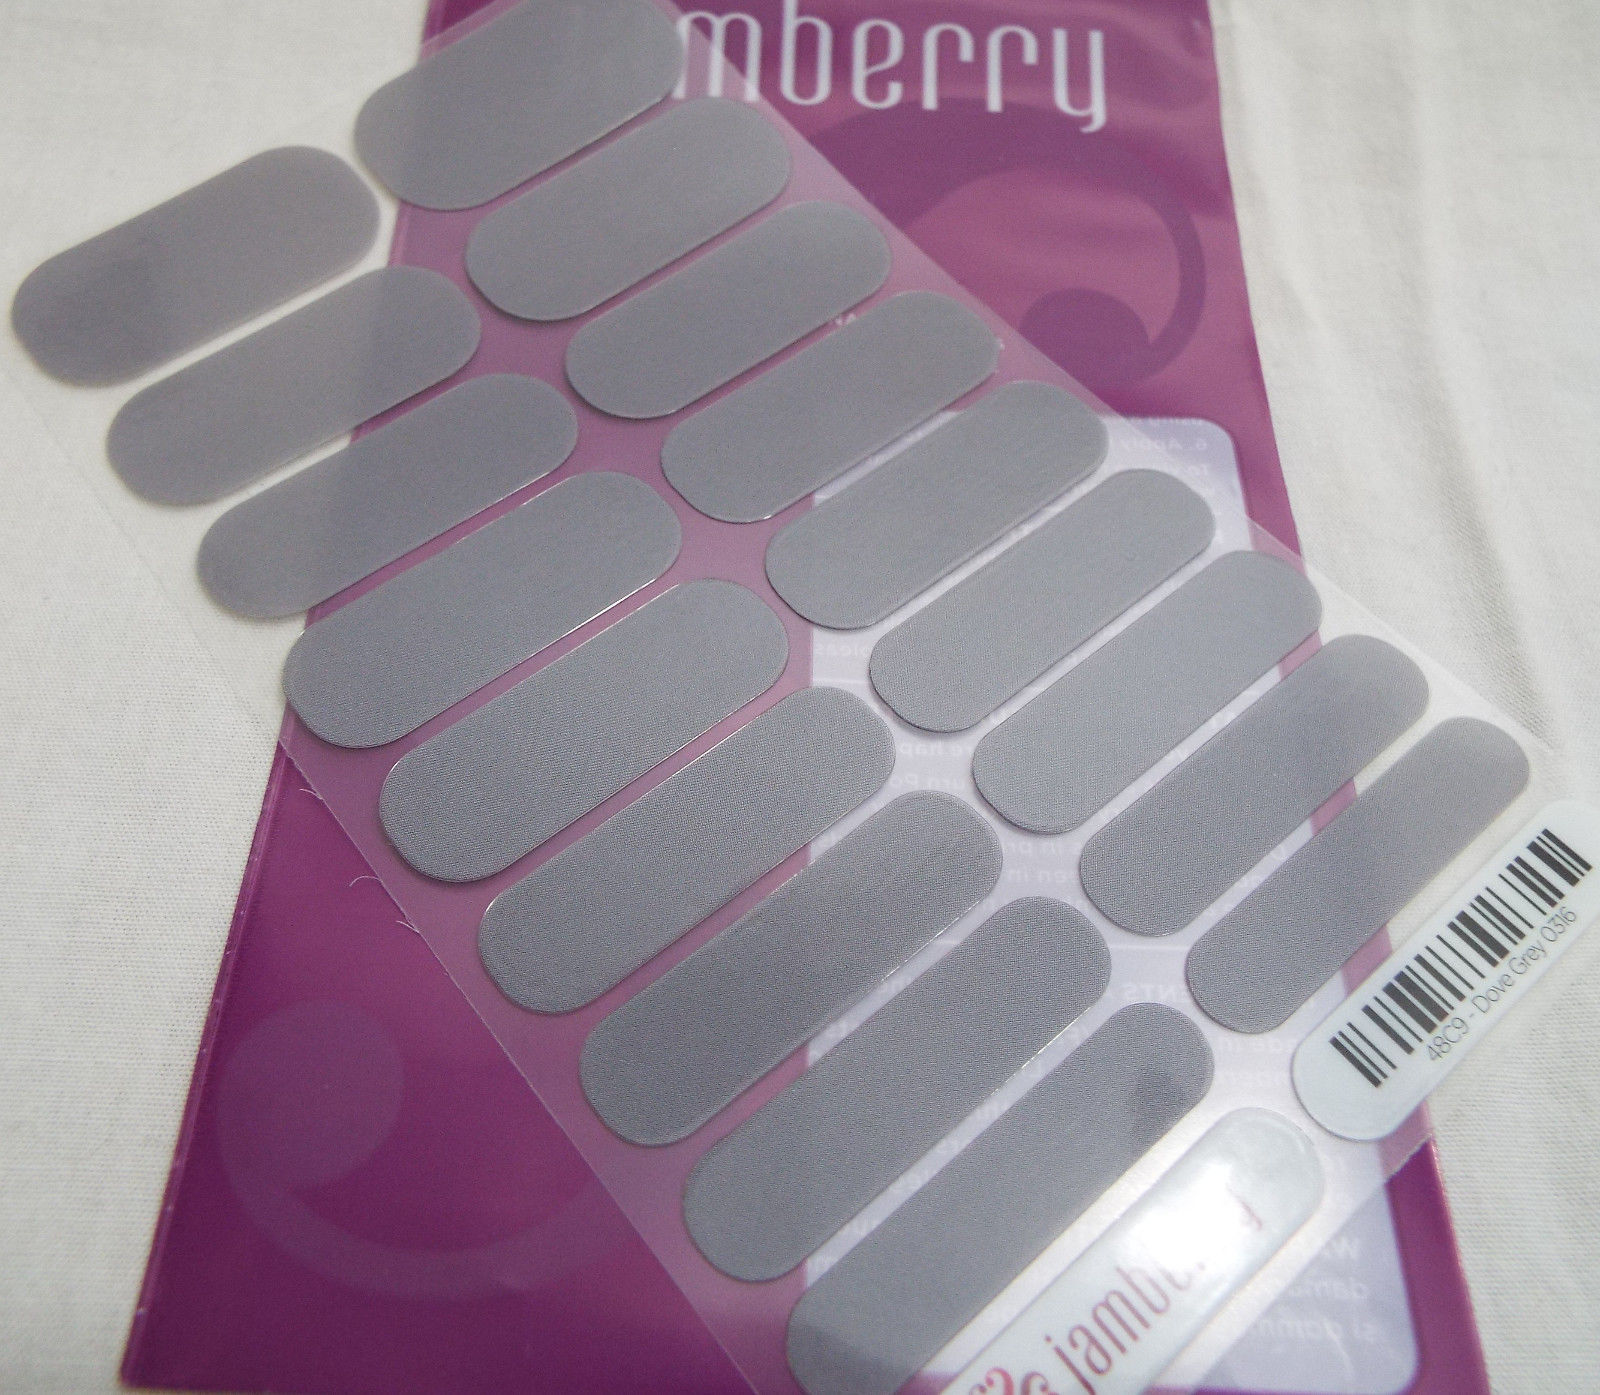 Primary image for Jamberry Dove Grey 0316 48C9 Nail Wrap Full Sheet